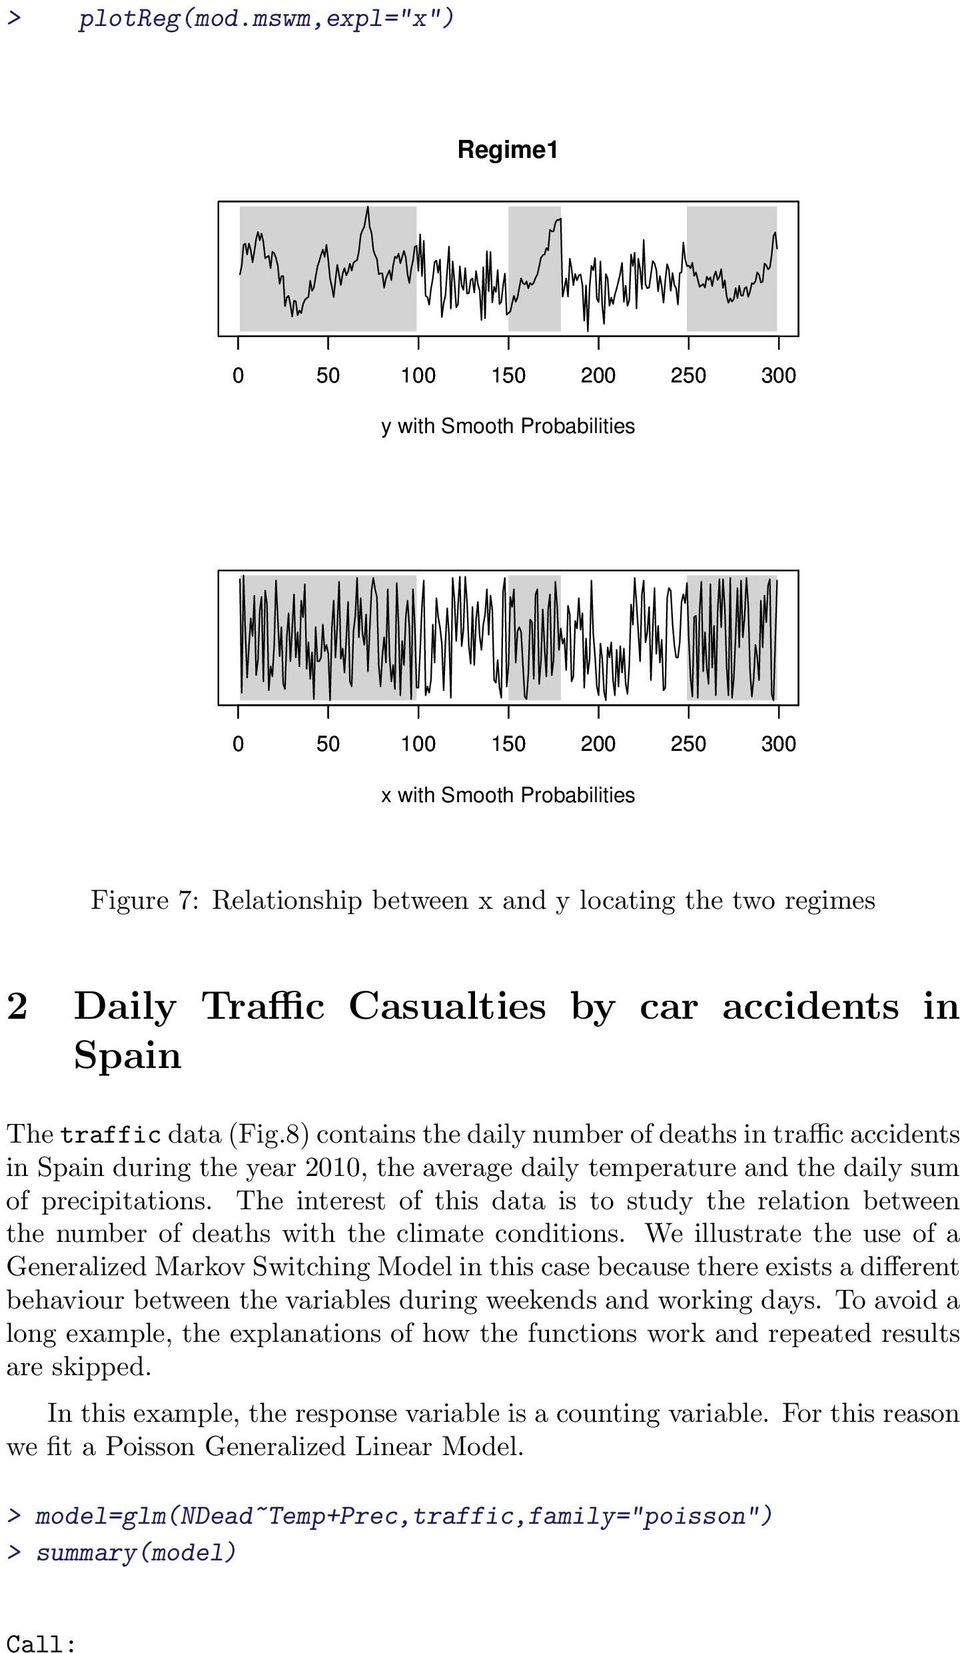 traffic data (Fig.8) contains the daily number of deaths in traffic accidents in Spain during the year 2010, the average daily temperature and the daily sum of precipitations.